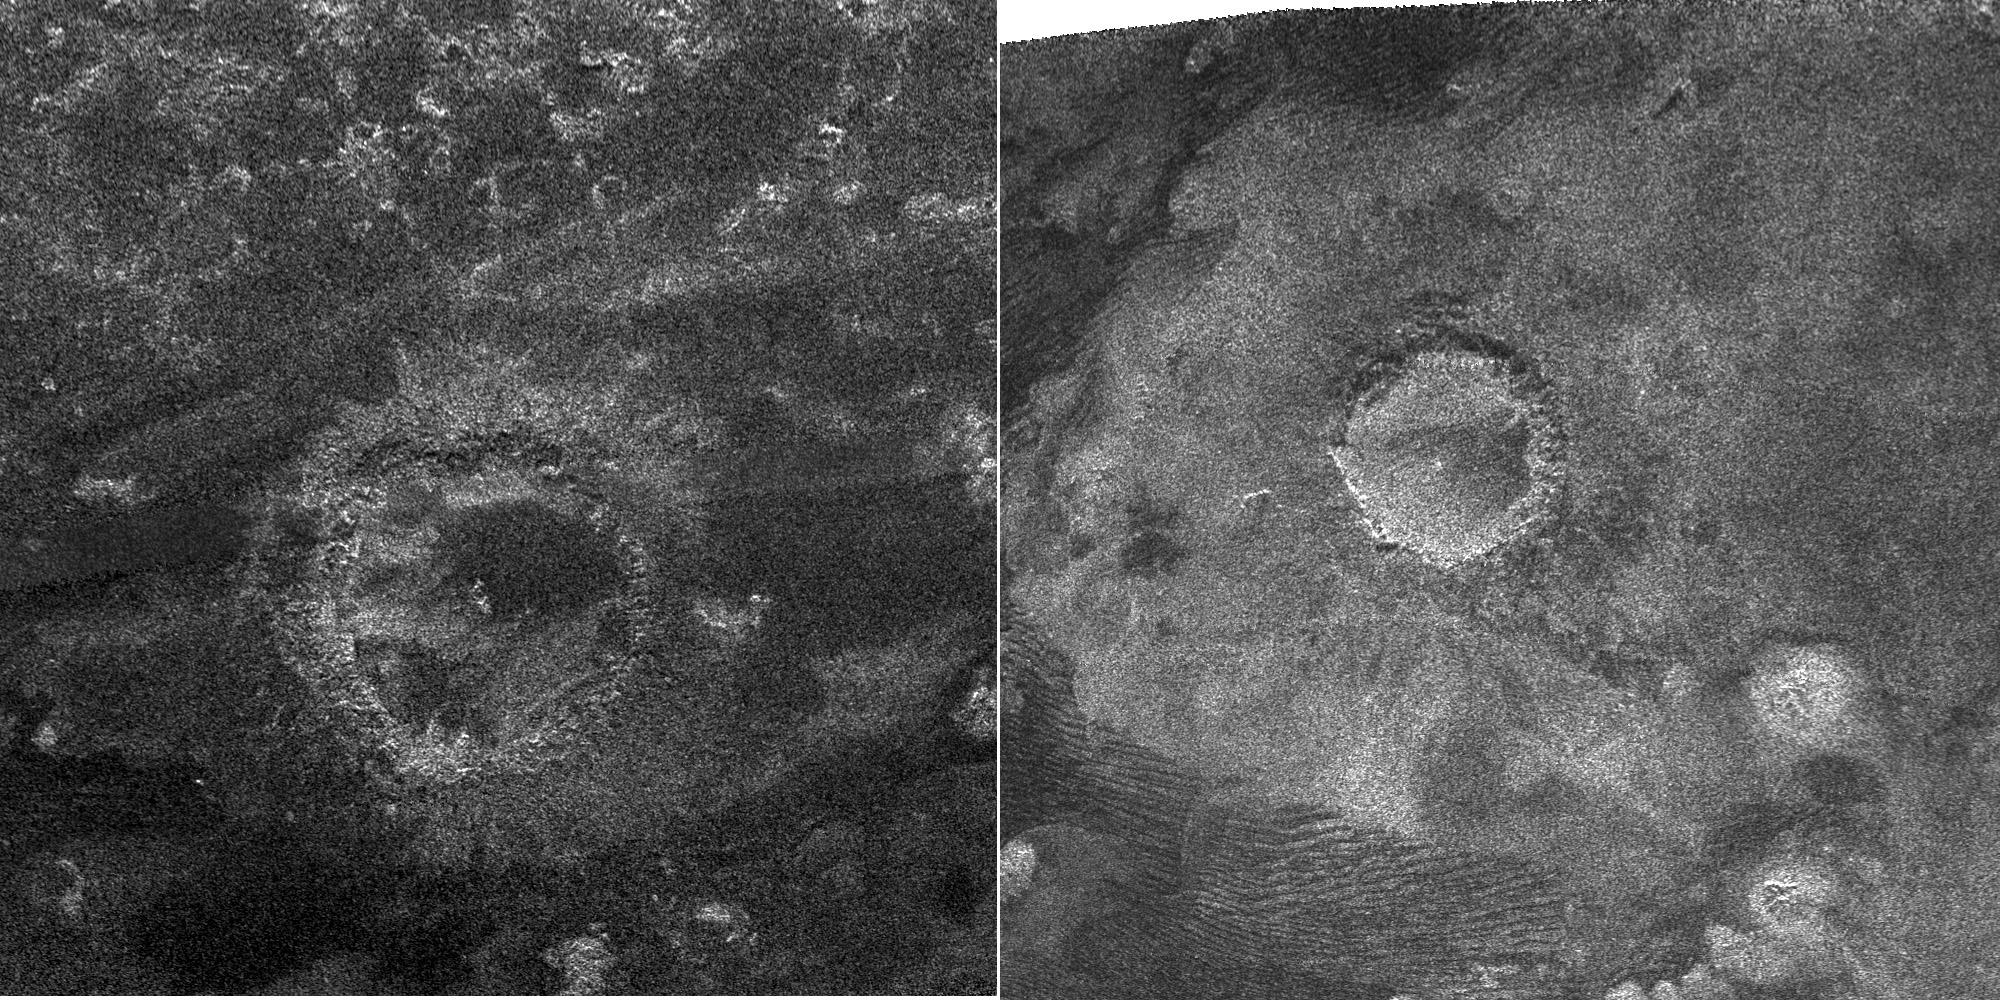 Side-by-side view of two impact craters on Titan.